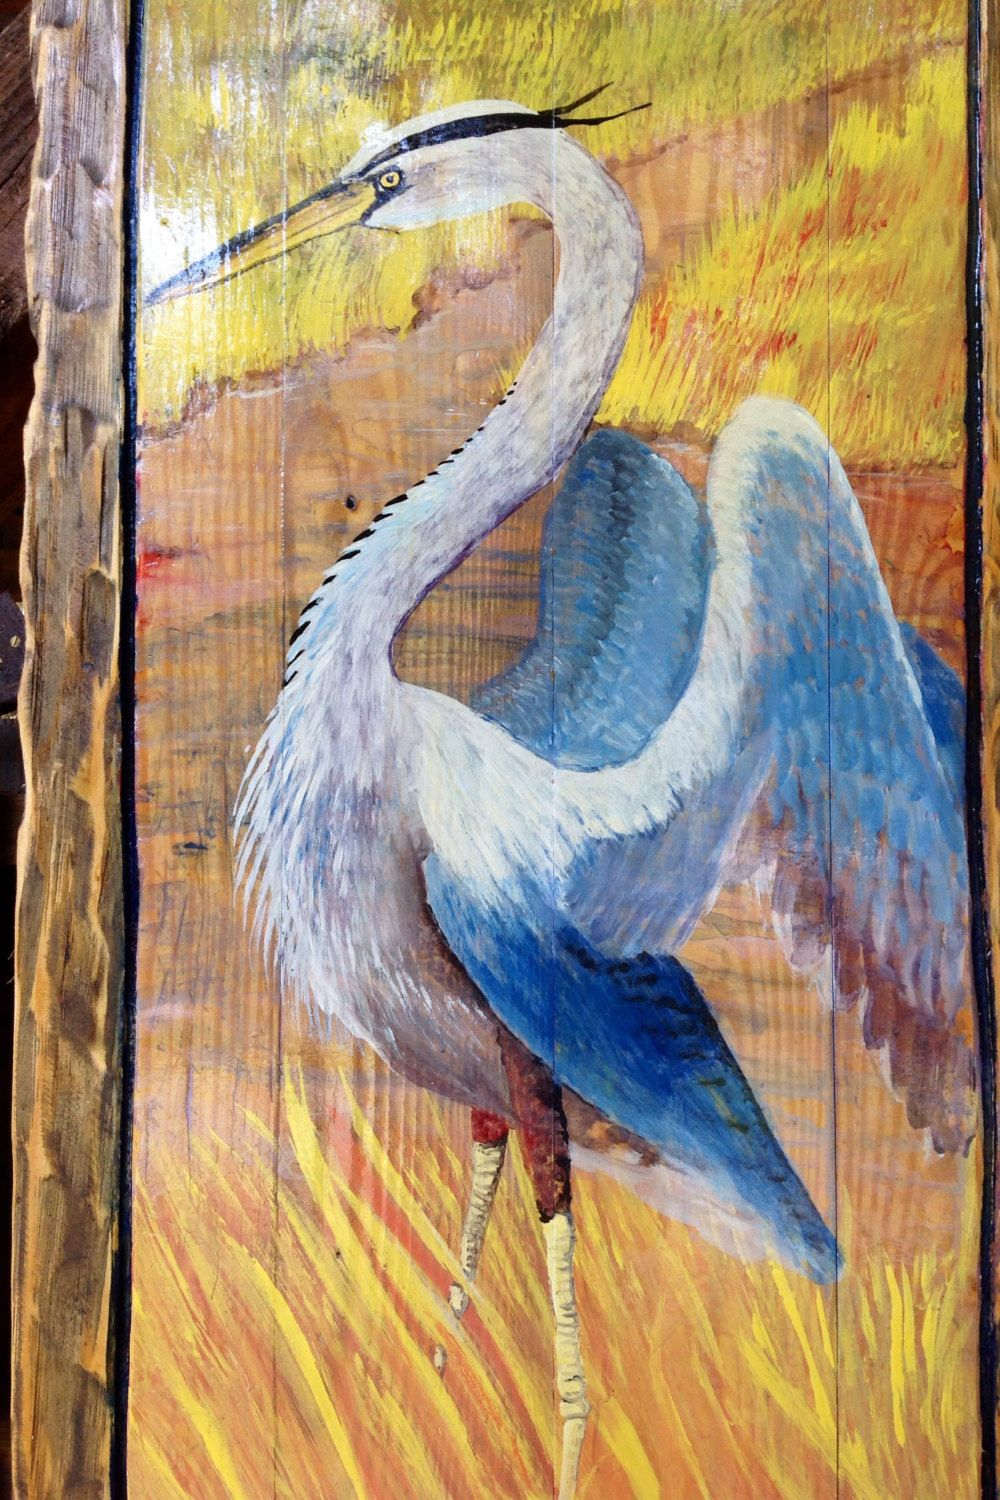 Two Blue Herons with disctrssed frame one of a kind original painting home decor wall art by wildlife artist Todd Lynd by oceanarts10 on Etsy